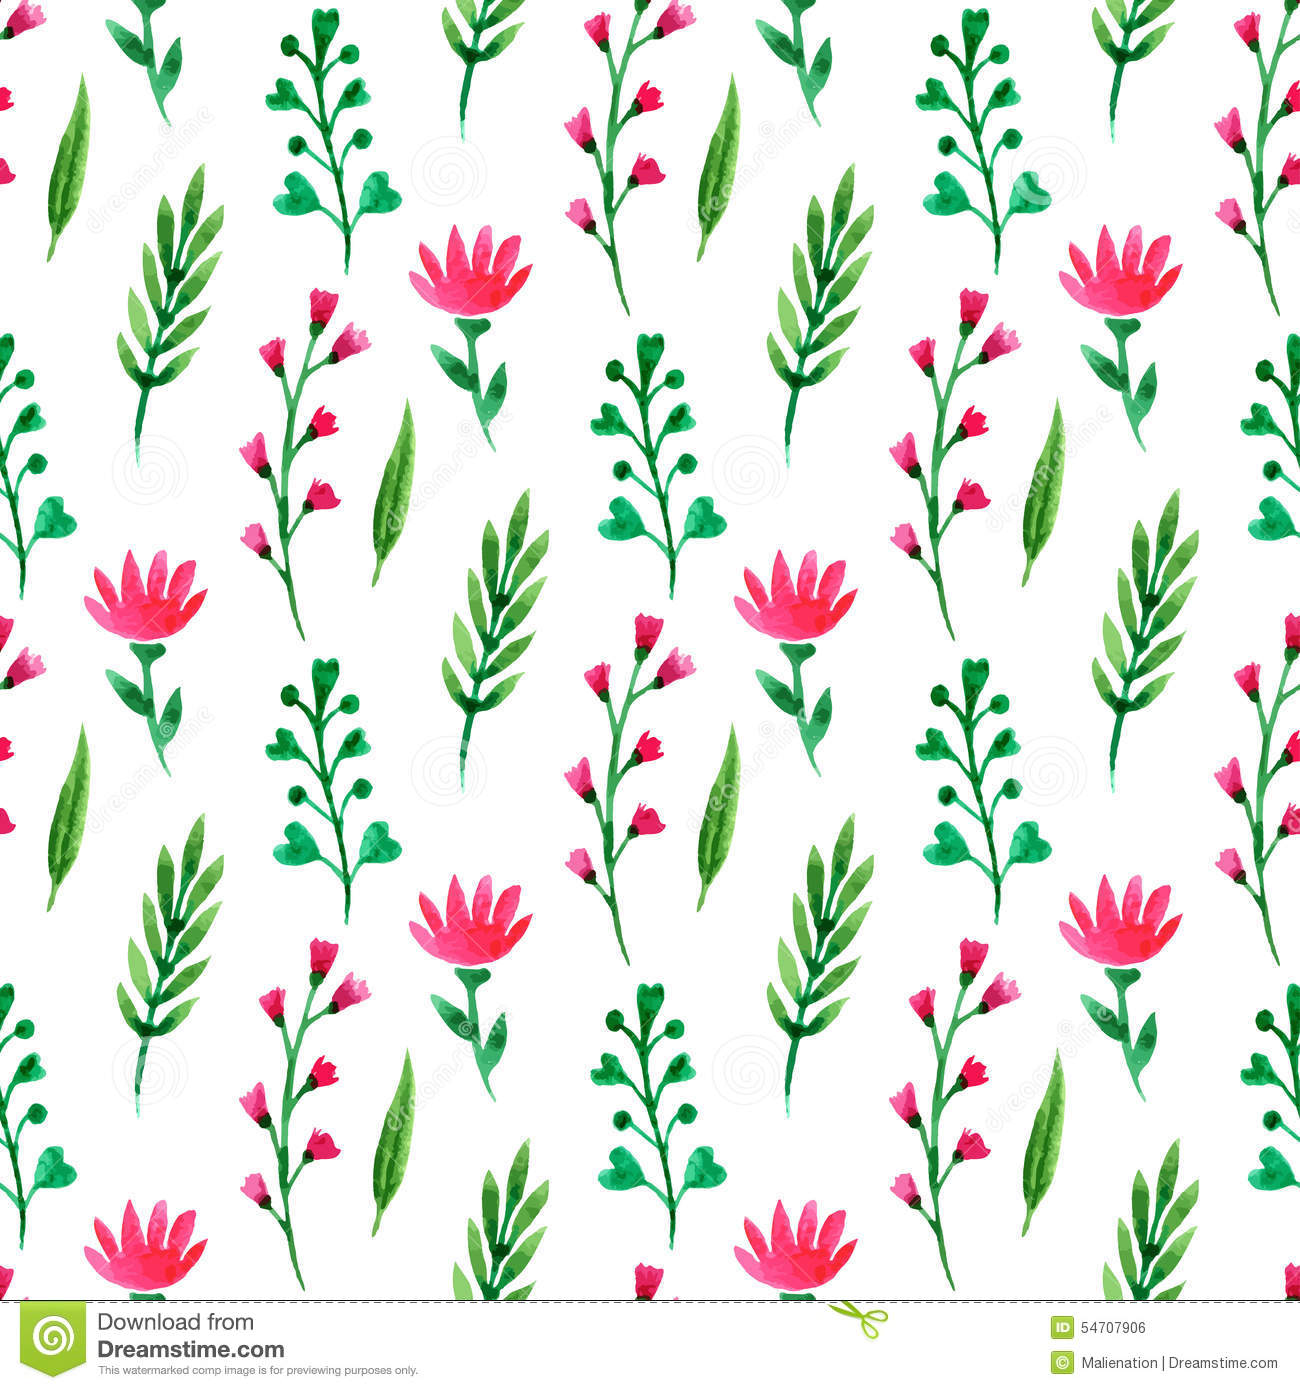 Cute Red Blue And Yellow Hd Graphic Flowers Wallpaper Cute Floral Seamless Pattern Summer Flowers Branches And